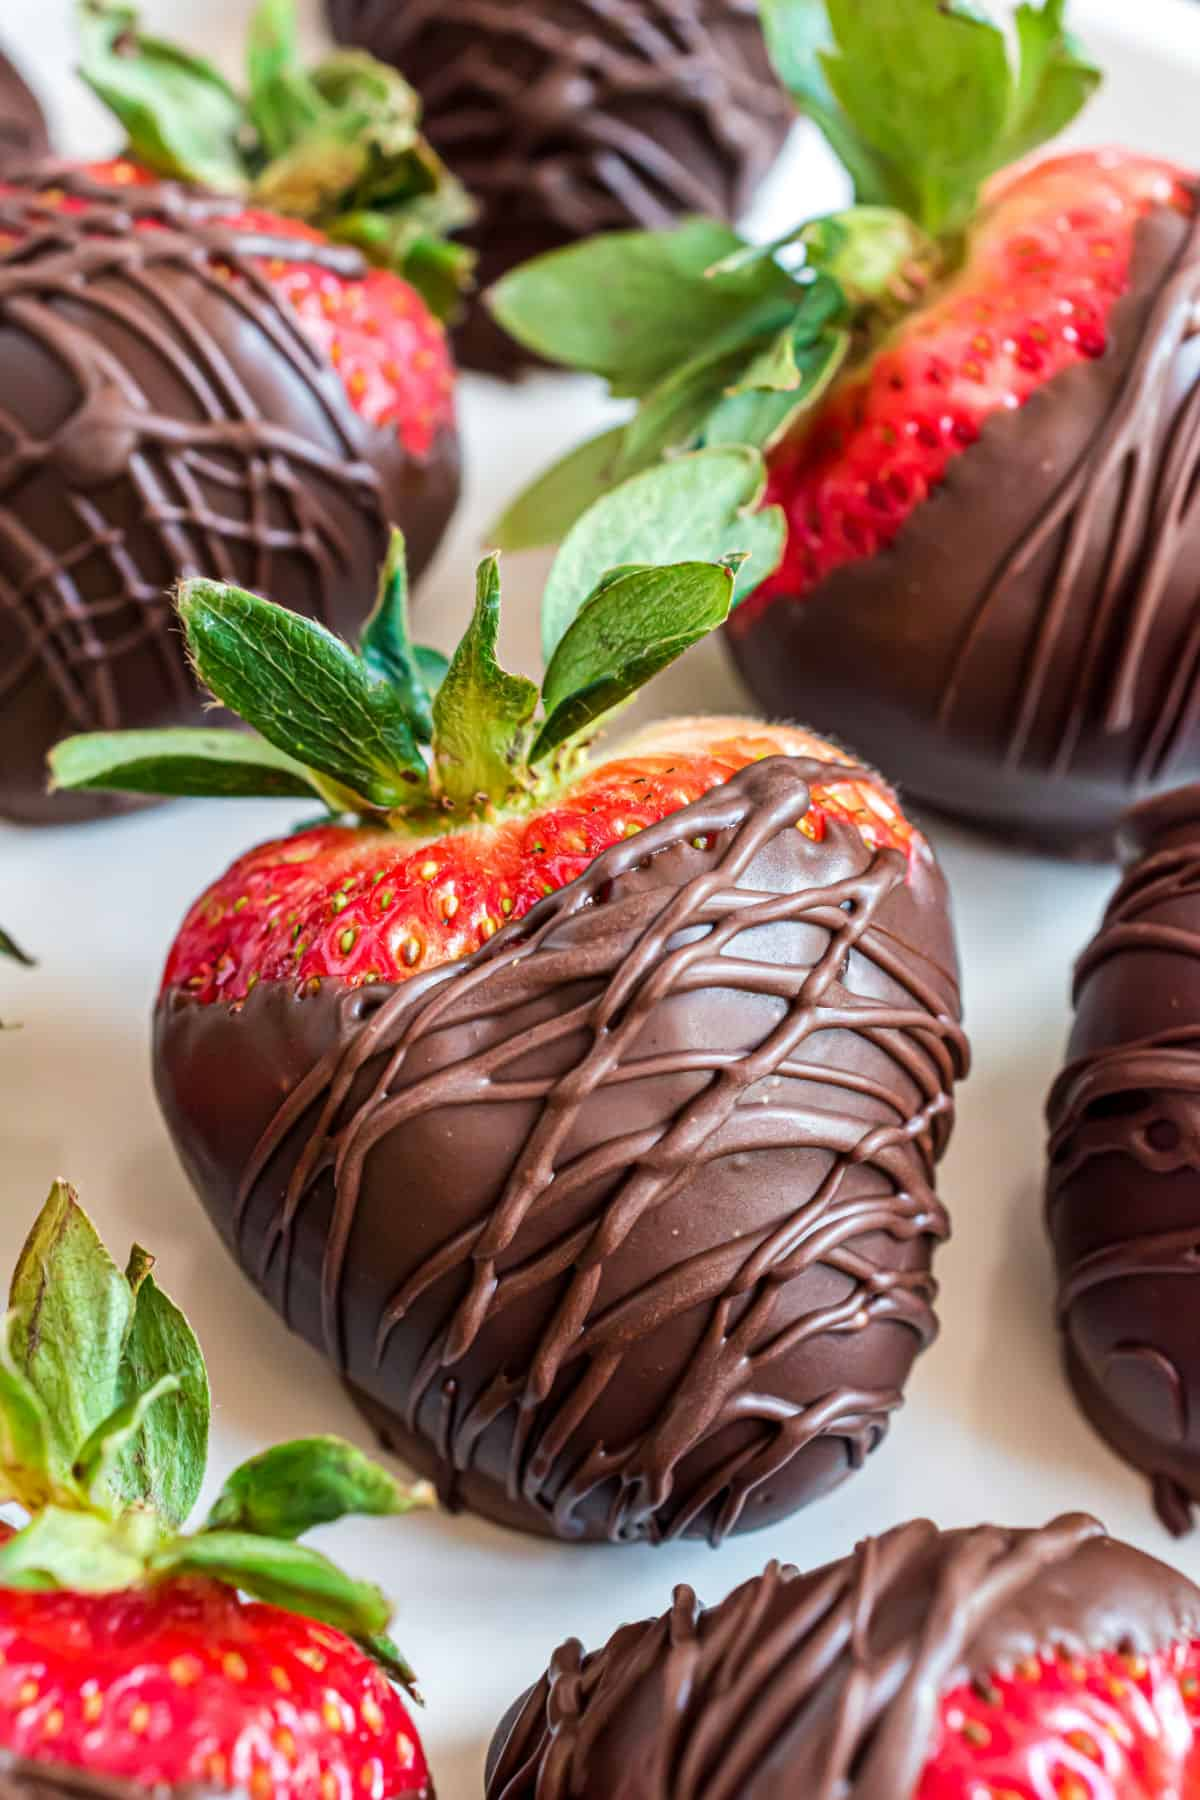 Chocolate covered strawberries on a piece of parchment paper.